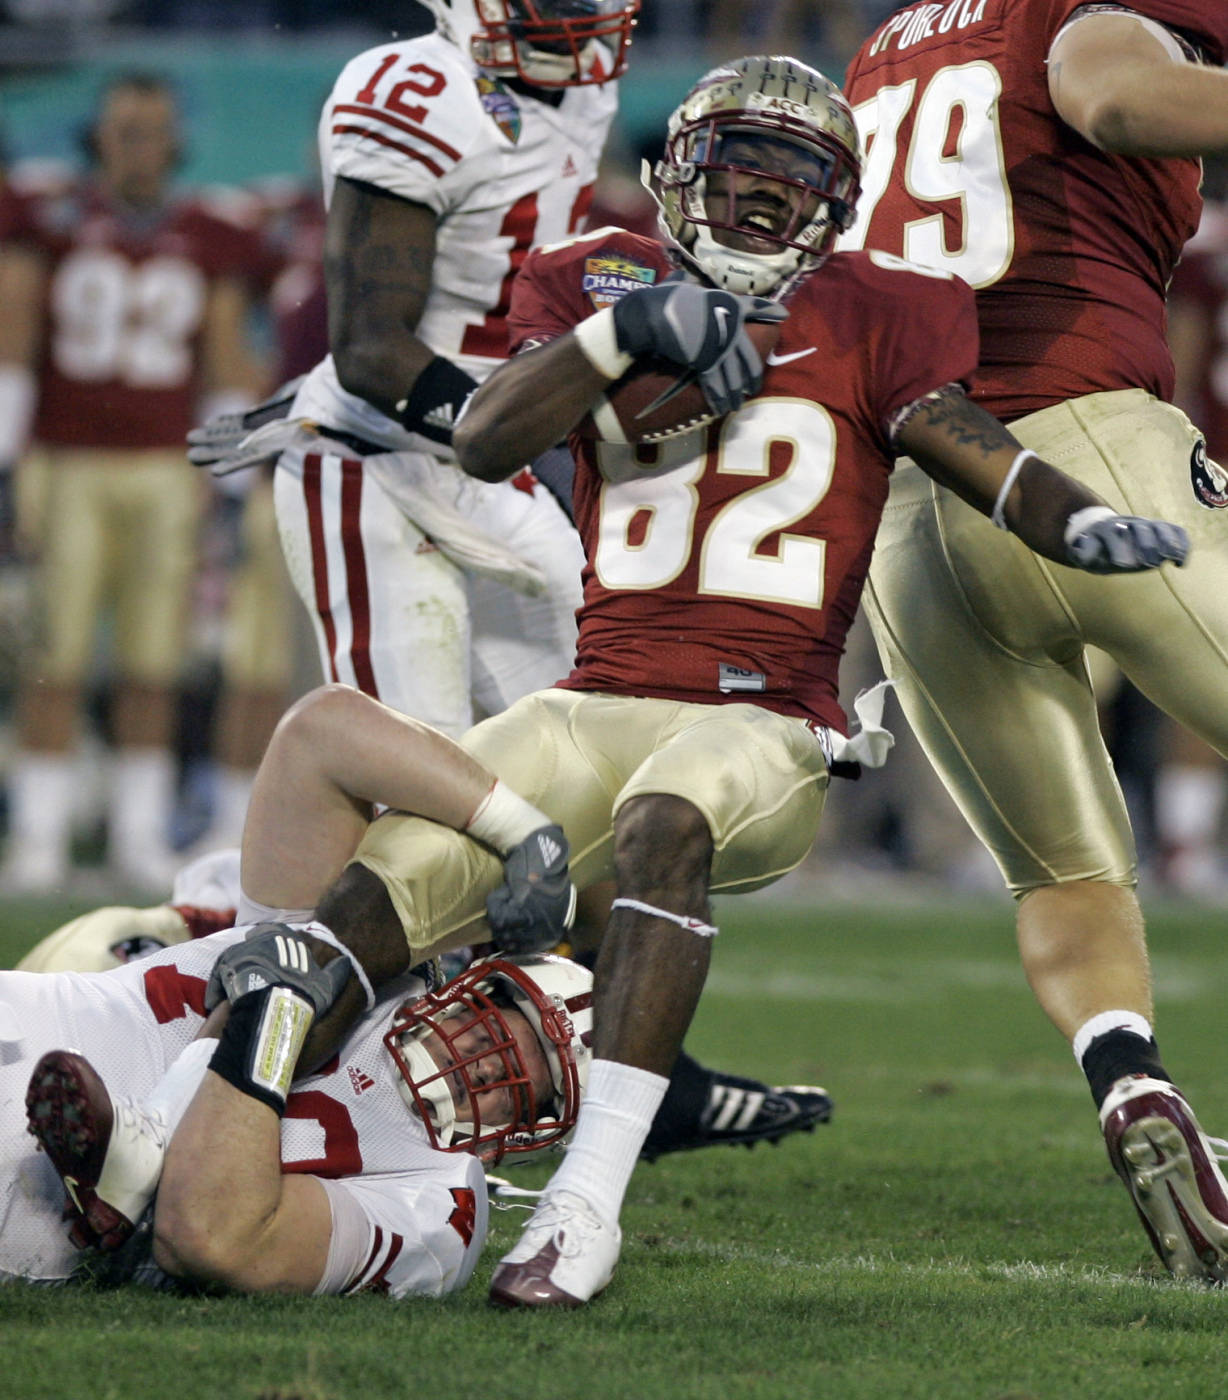 Florida State receiver Taiwan Easterling (82) is stopped by Wisconsin defensive lineman Jeff Stehle, lower left, after a short gain during the first half. (AP Photo/John Raoux)